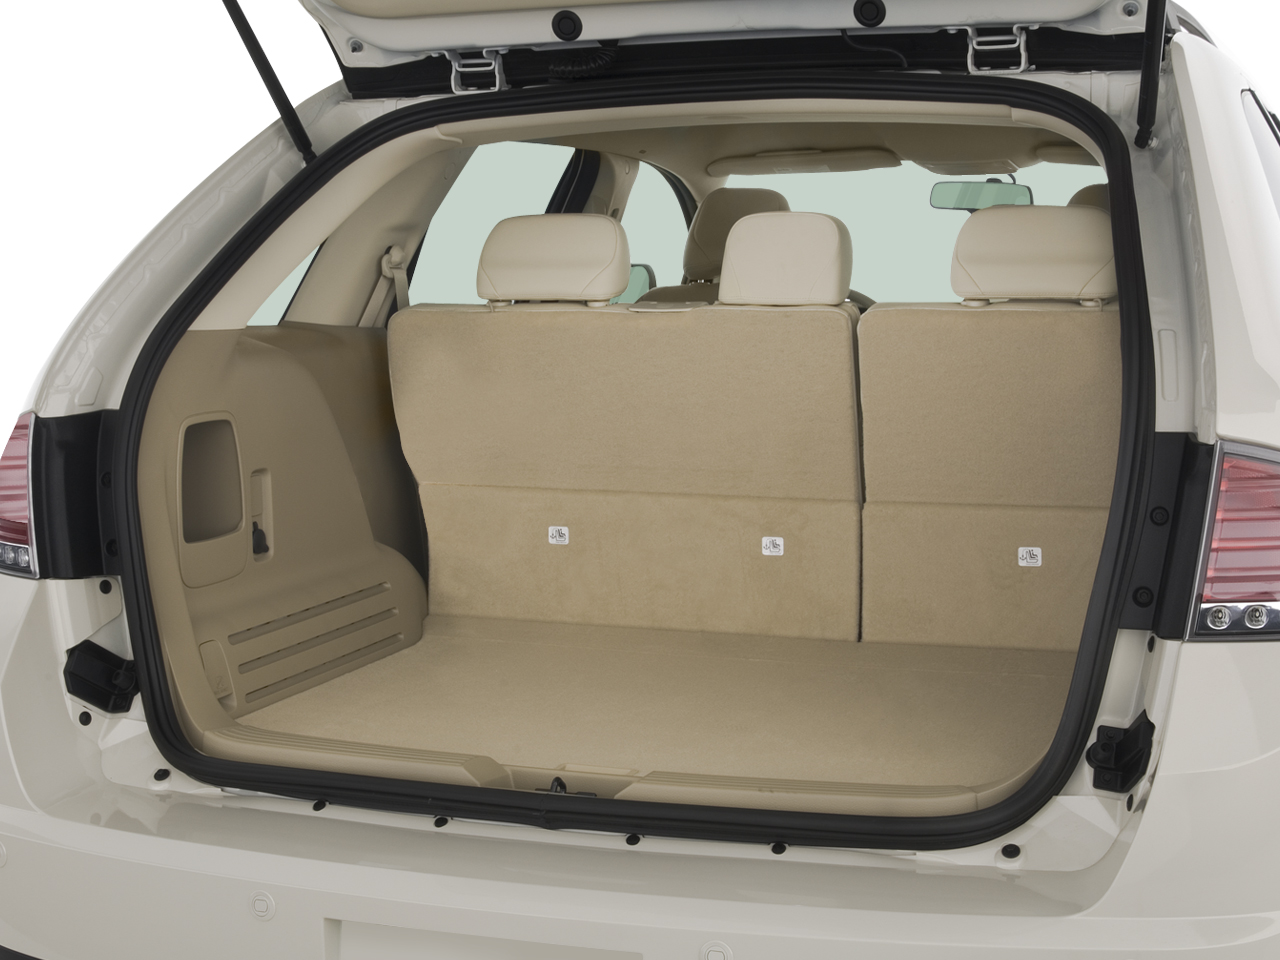 http://st.automobilemag.com/uploads/sites/10/2015/11/2007-lincoln-mkx-awd-suv-trunk.png